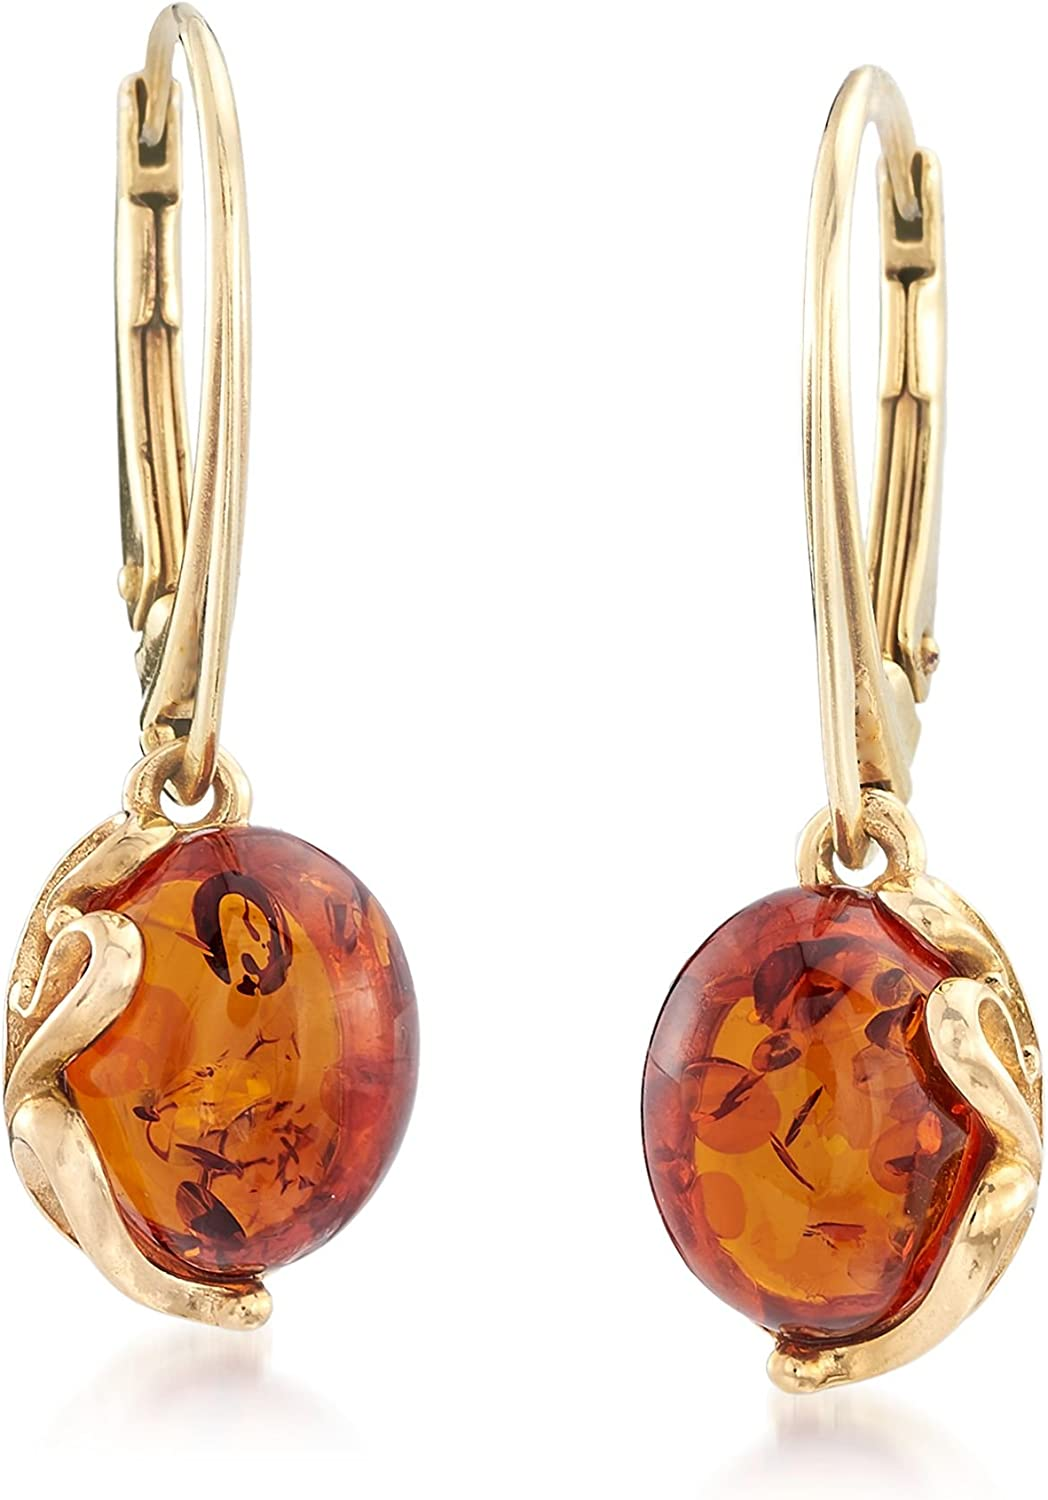 Amber Dangle Earrings,14K Yellow Gold Post and Push Backs